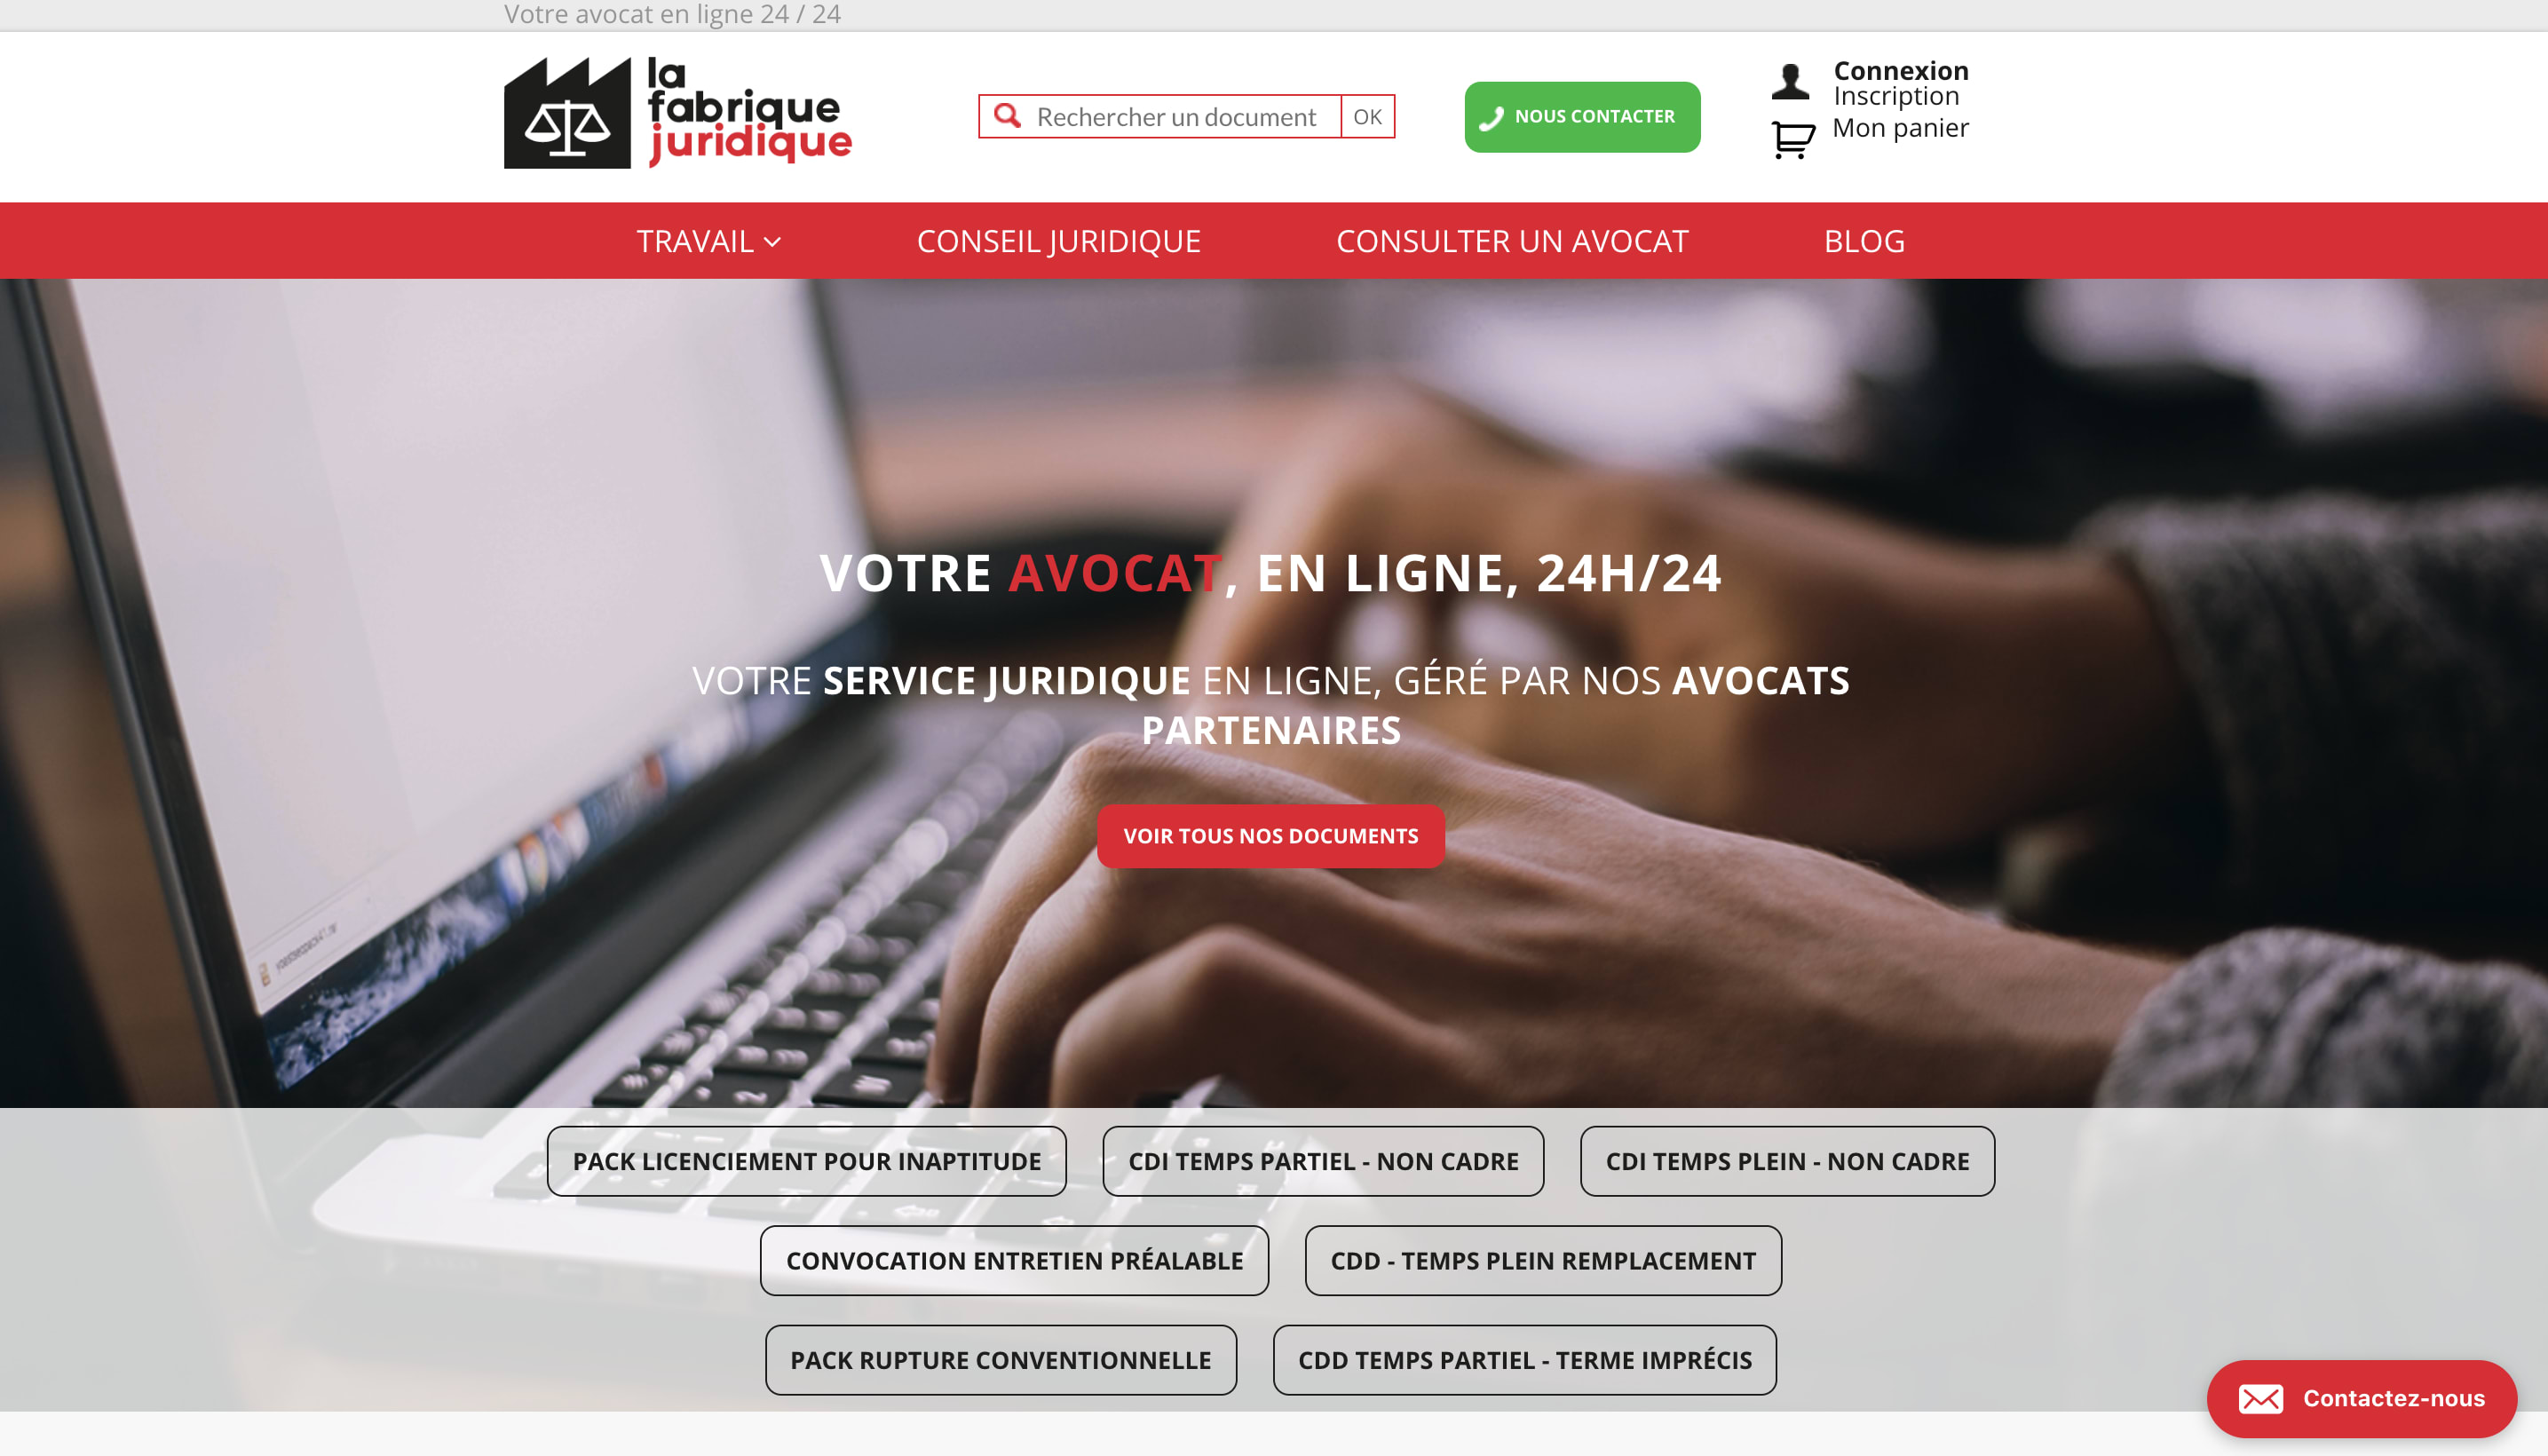 With the Legal Factory, have your acts relating to Social Law, Labor Law, Commercial Law and Intellectual Property drafted by a specialist lawyer, online and in less than 72 hours. La Fabrique Juridique is your future lawyer, specialist in labor law, online, 24 hours a day! We offer you a list of more than 150 acts relating to labor law, all written to measure and at the request of our specialist lawyers. But also, the possibility of asking your Legal questions to our lawyers and followed to follow Legal of your company via online consultations. How it works? Log on to lafabriquejuridique.fr, find the act you don't need, fill out a questionnaire and our lawyers will take over! Less than 72 hours later, it's in your mailbox. What if your lawyer needs more information? He contacts you directly! With the Legal Factory, focus on your core business while saving money! Join us!